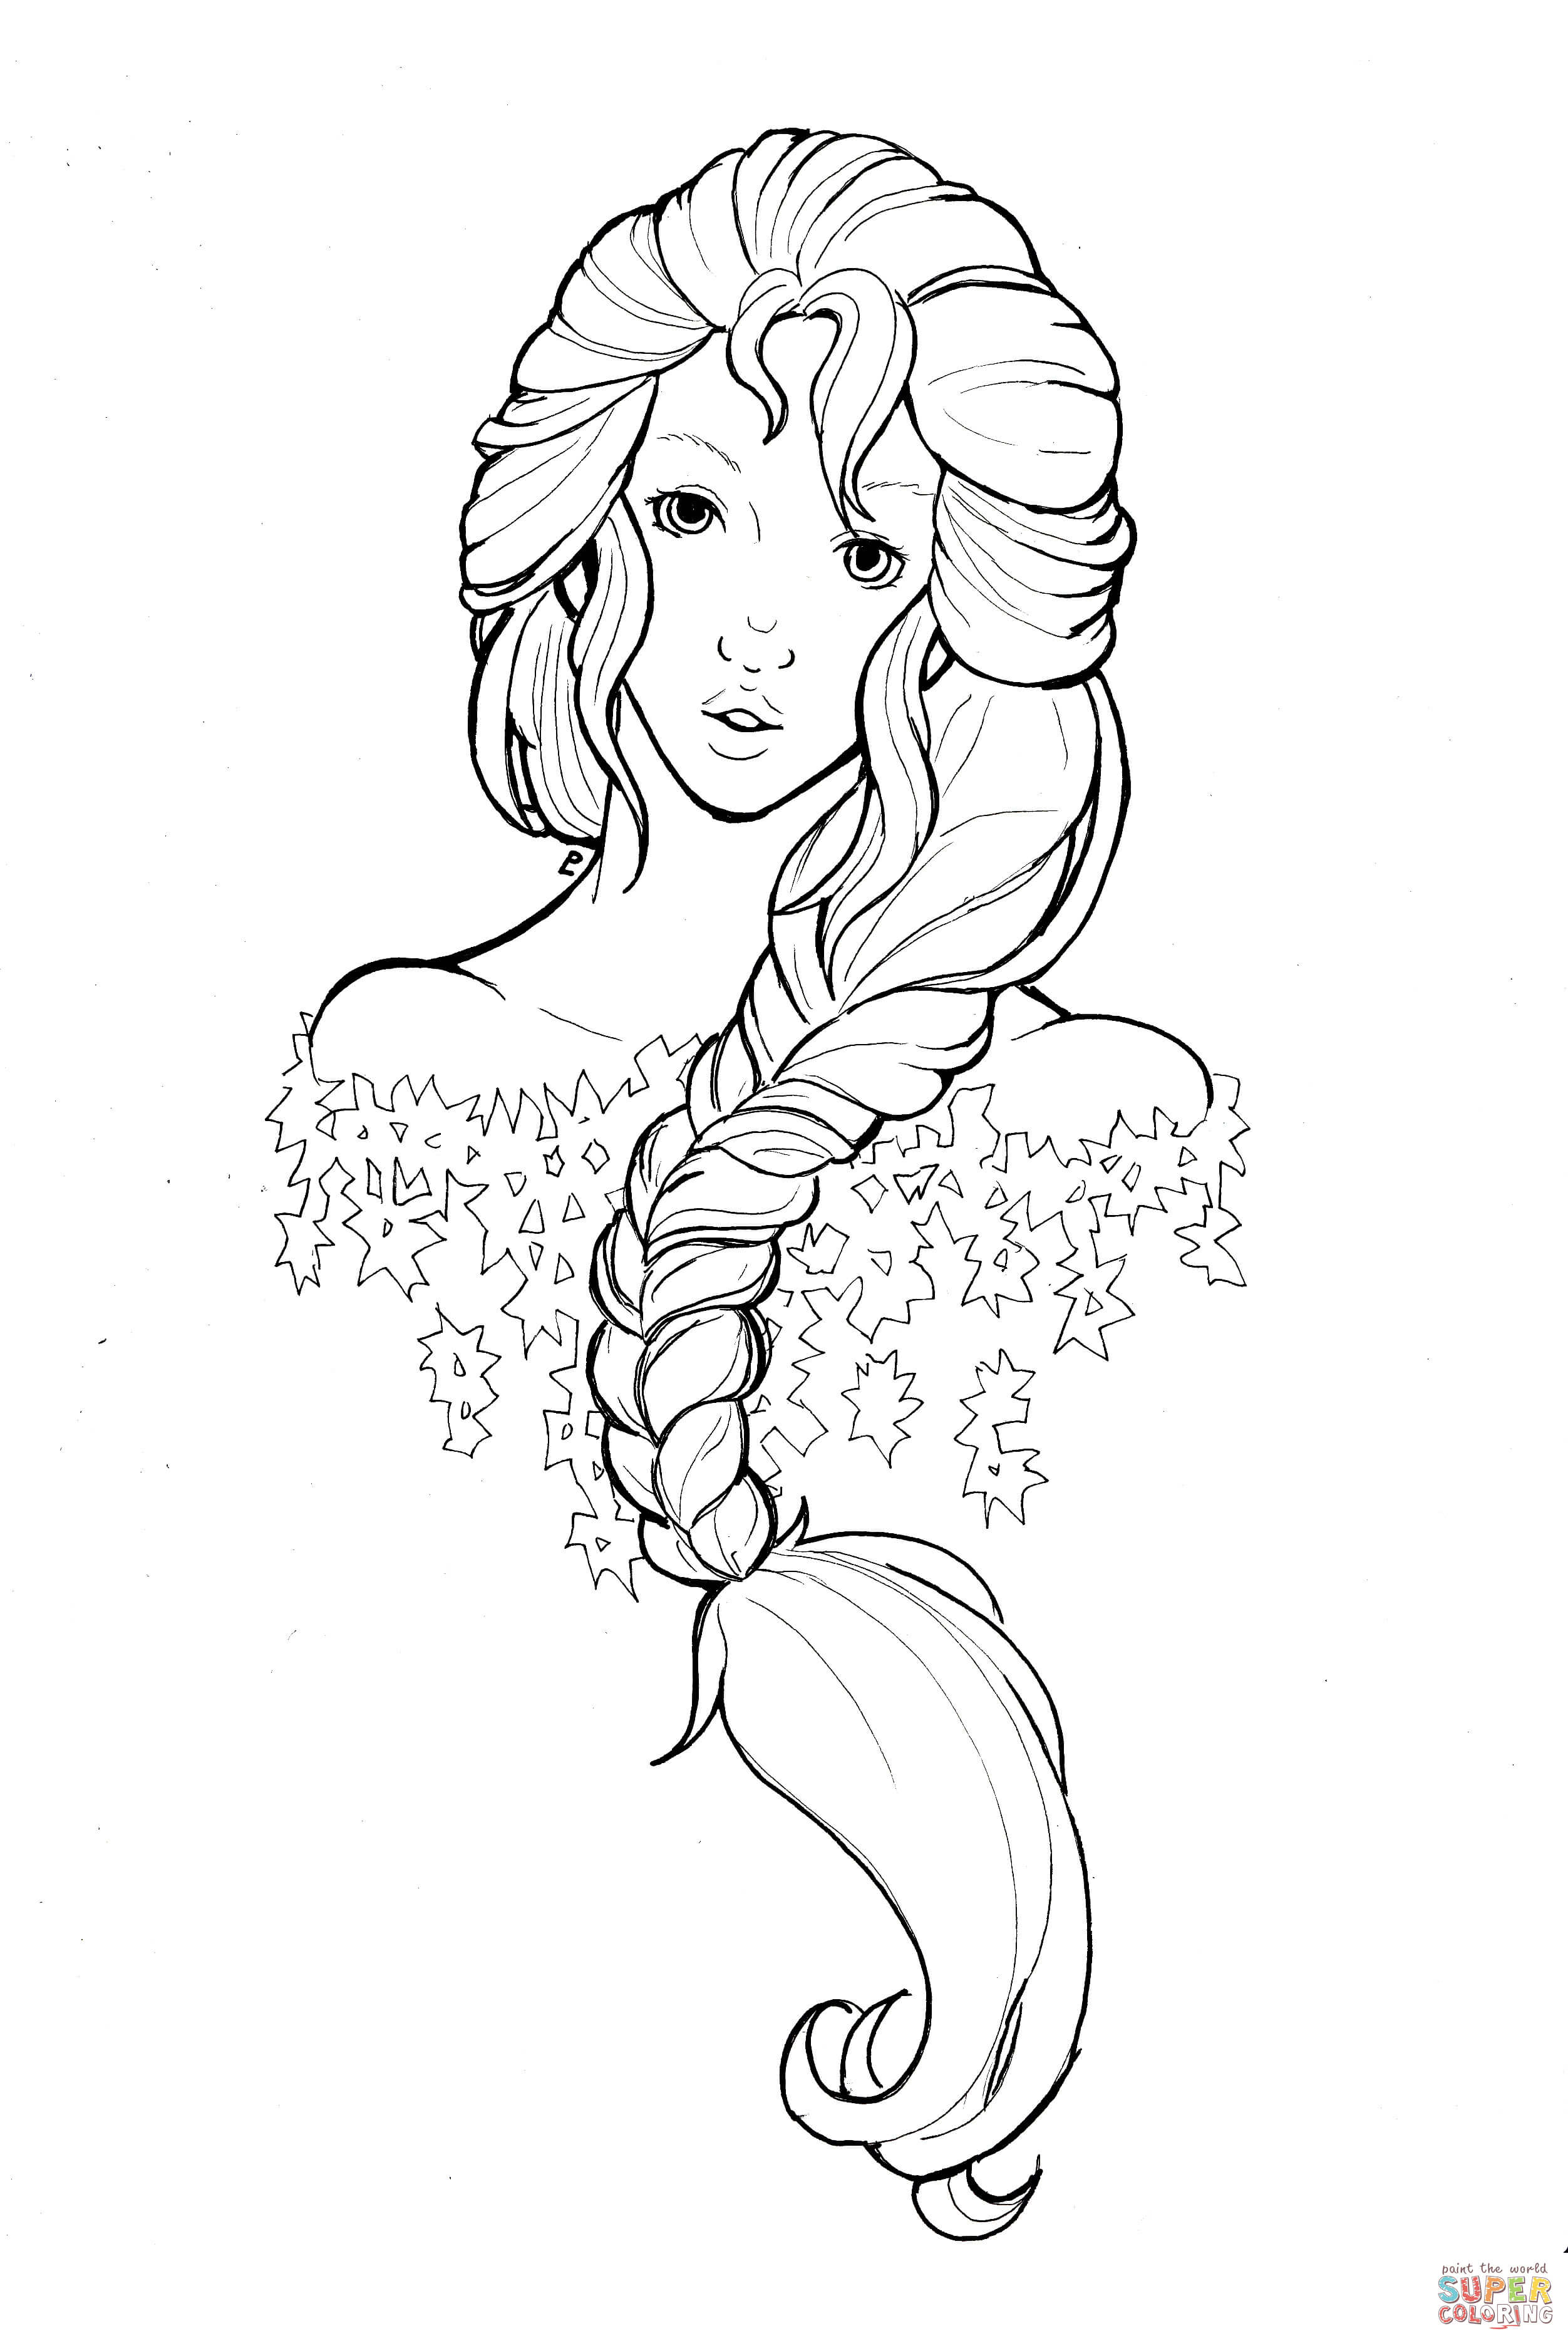 The Snow Queen By Namtia Coloring Page Free Printable Coloring Pages